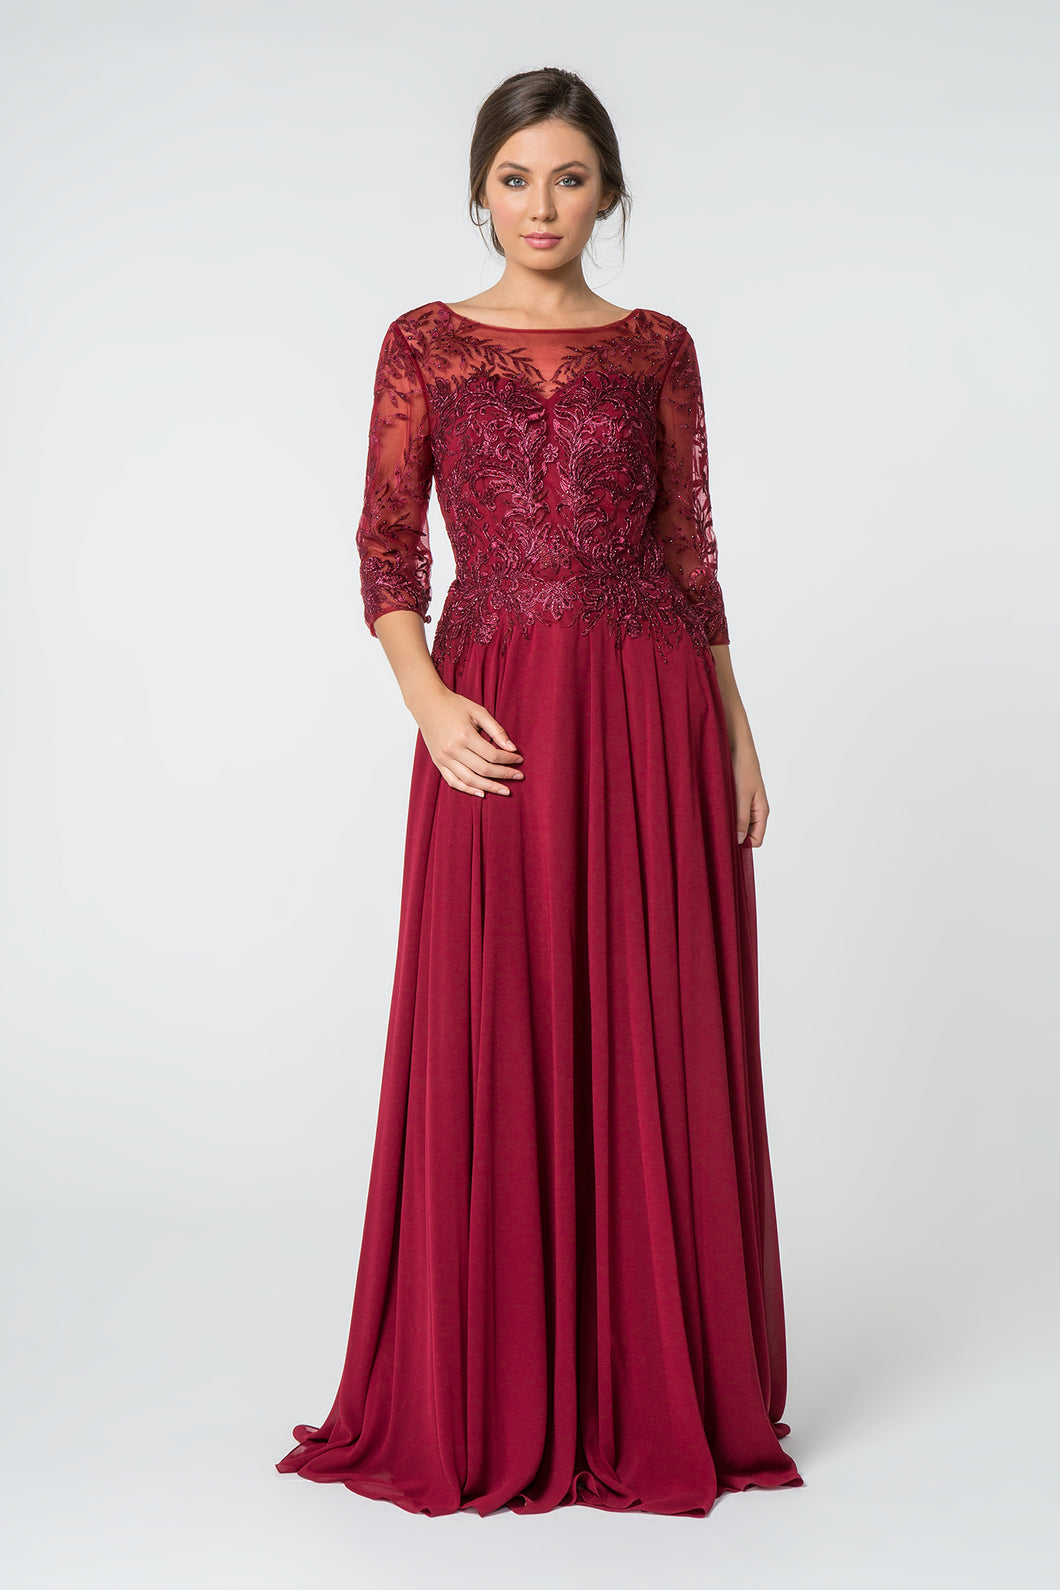 Trudy Mothers Dress 3/4 Length Sleeve with Chiffon Skirt in Burgundy G2810XR-Burgundy SAMPLE IN STORE (in navy)